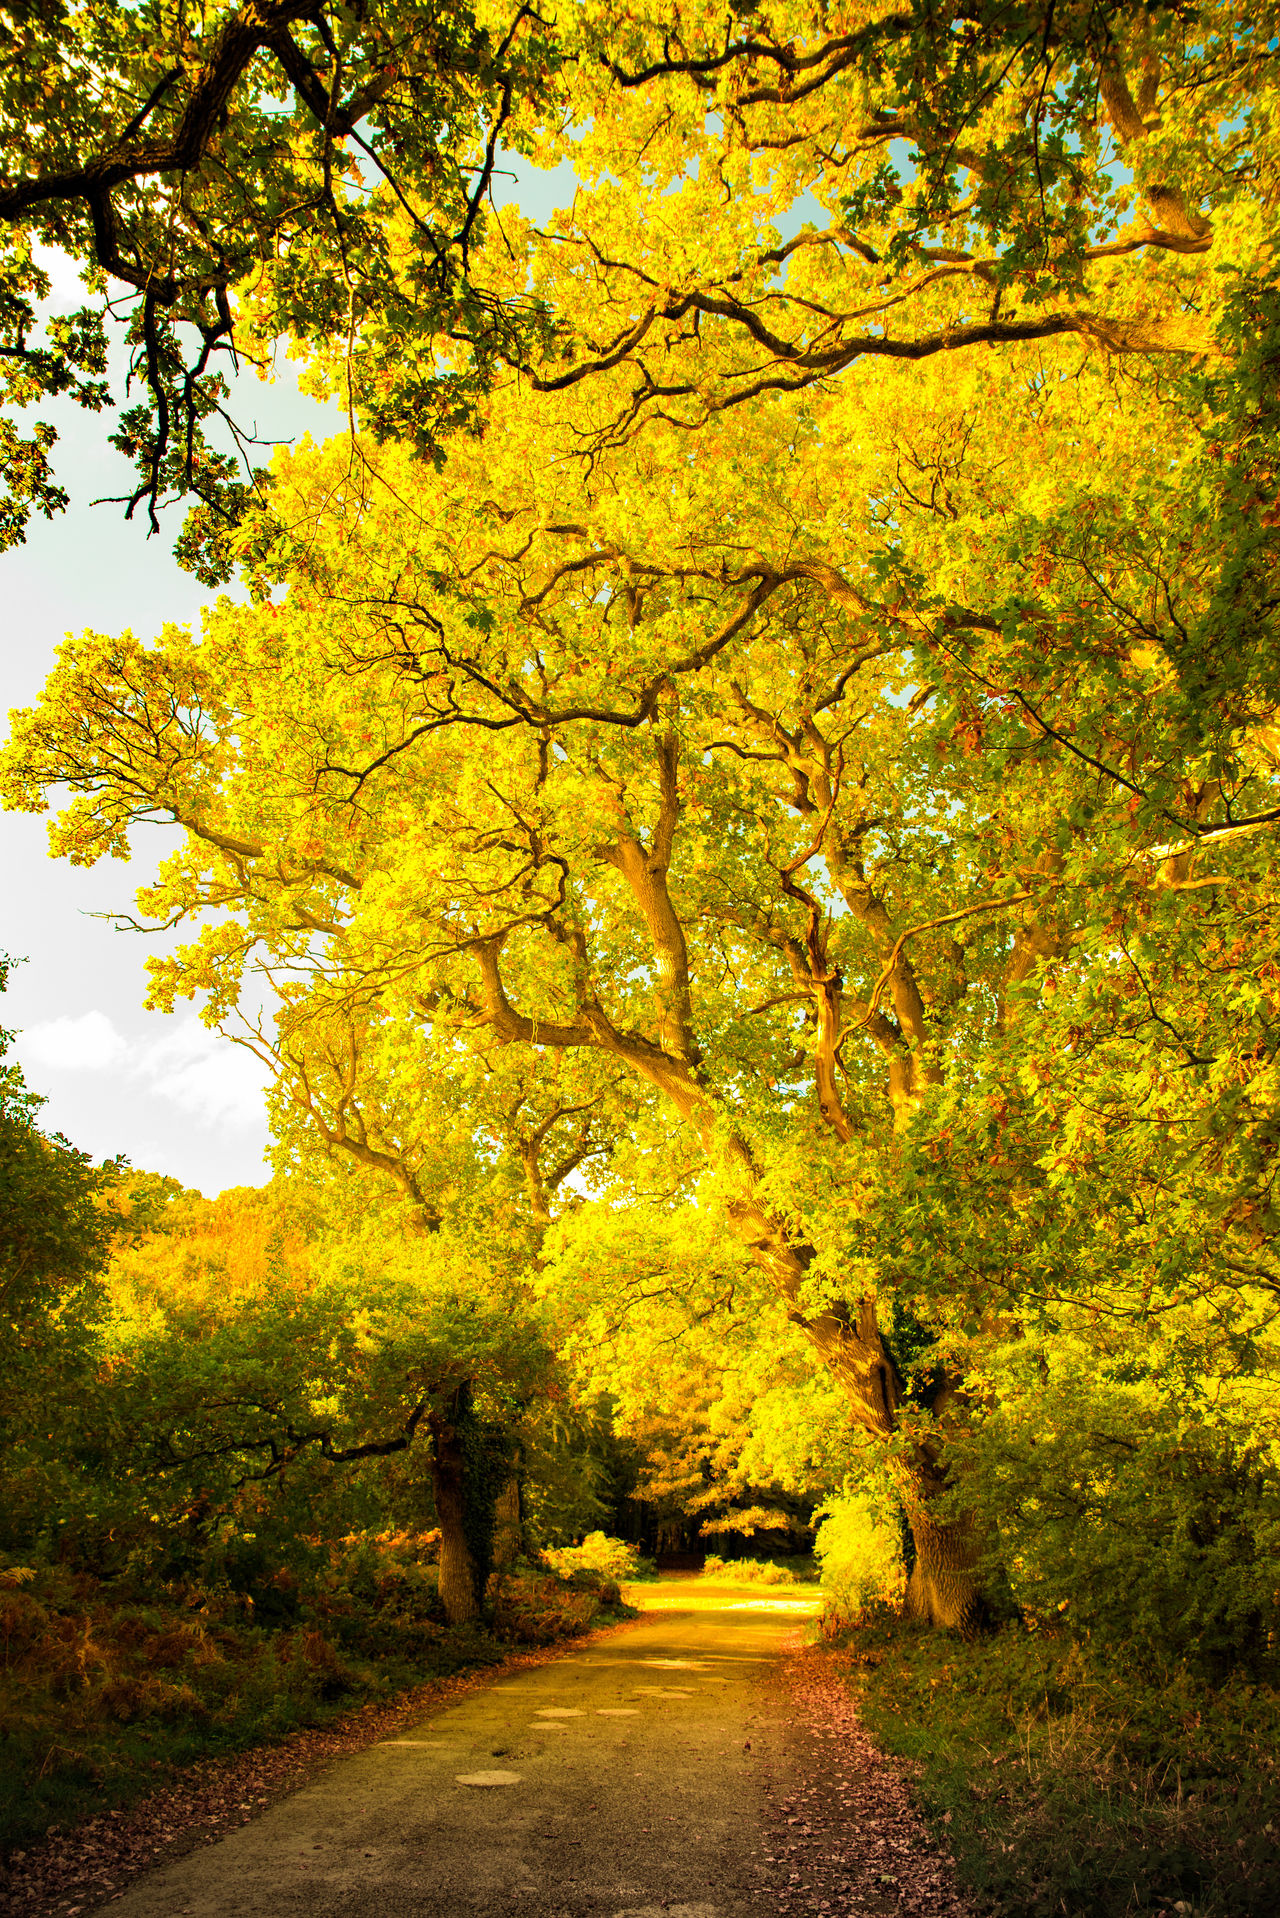 Capturing the beauty of fall at Charleville Forest, Tullamore, Ireland Autumn Autumn Colors Beauty In Nature Fall Nature Outdoors Tree Yellow